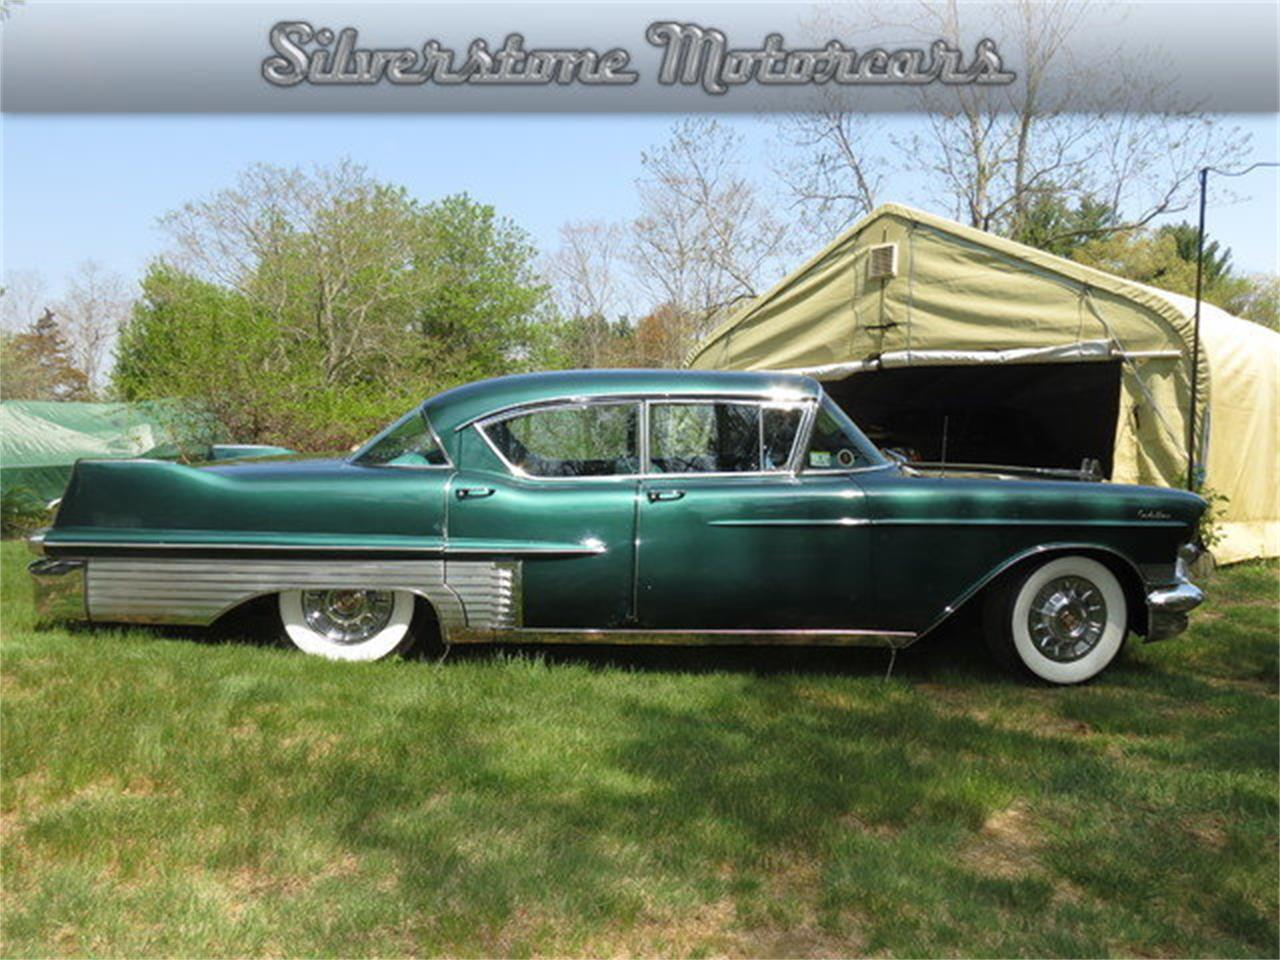 Large Picture of Classic '57 Cadillac Fleetwood - $19,950.00 Offered by Silverstone Motorcars - F8GG